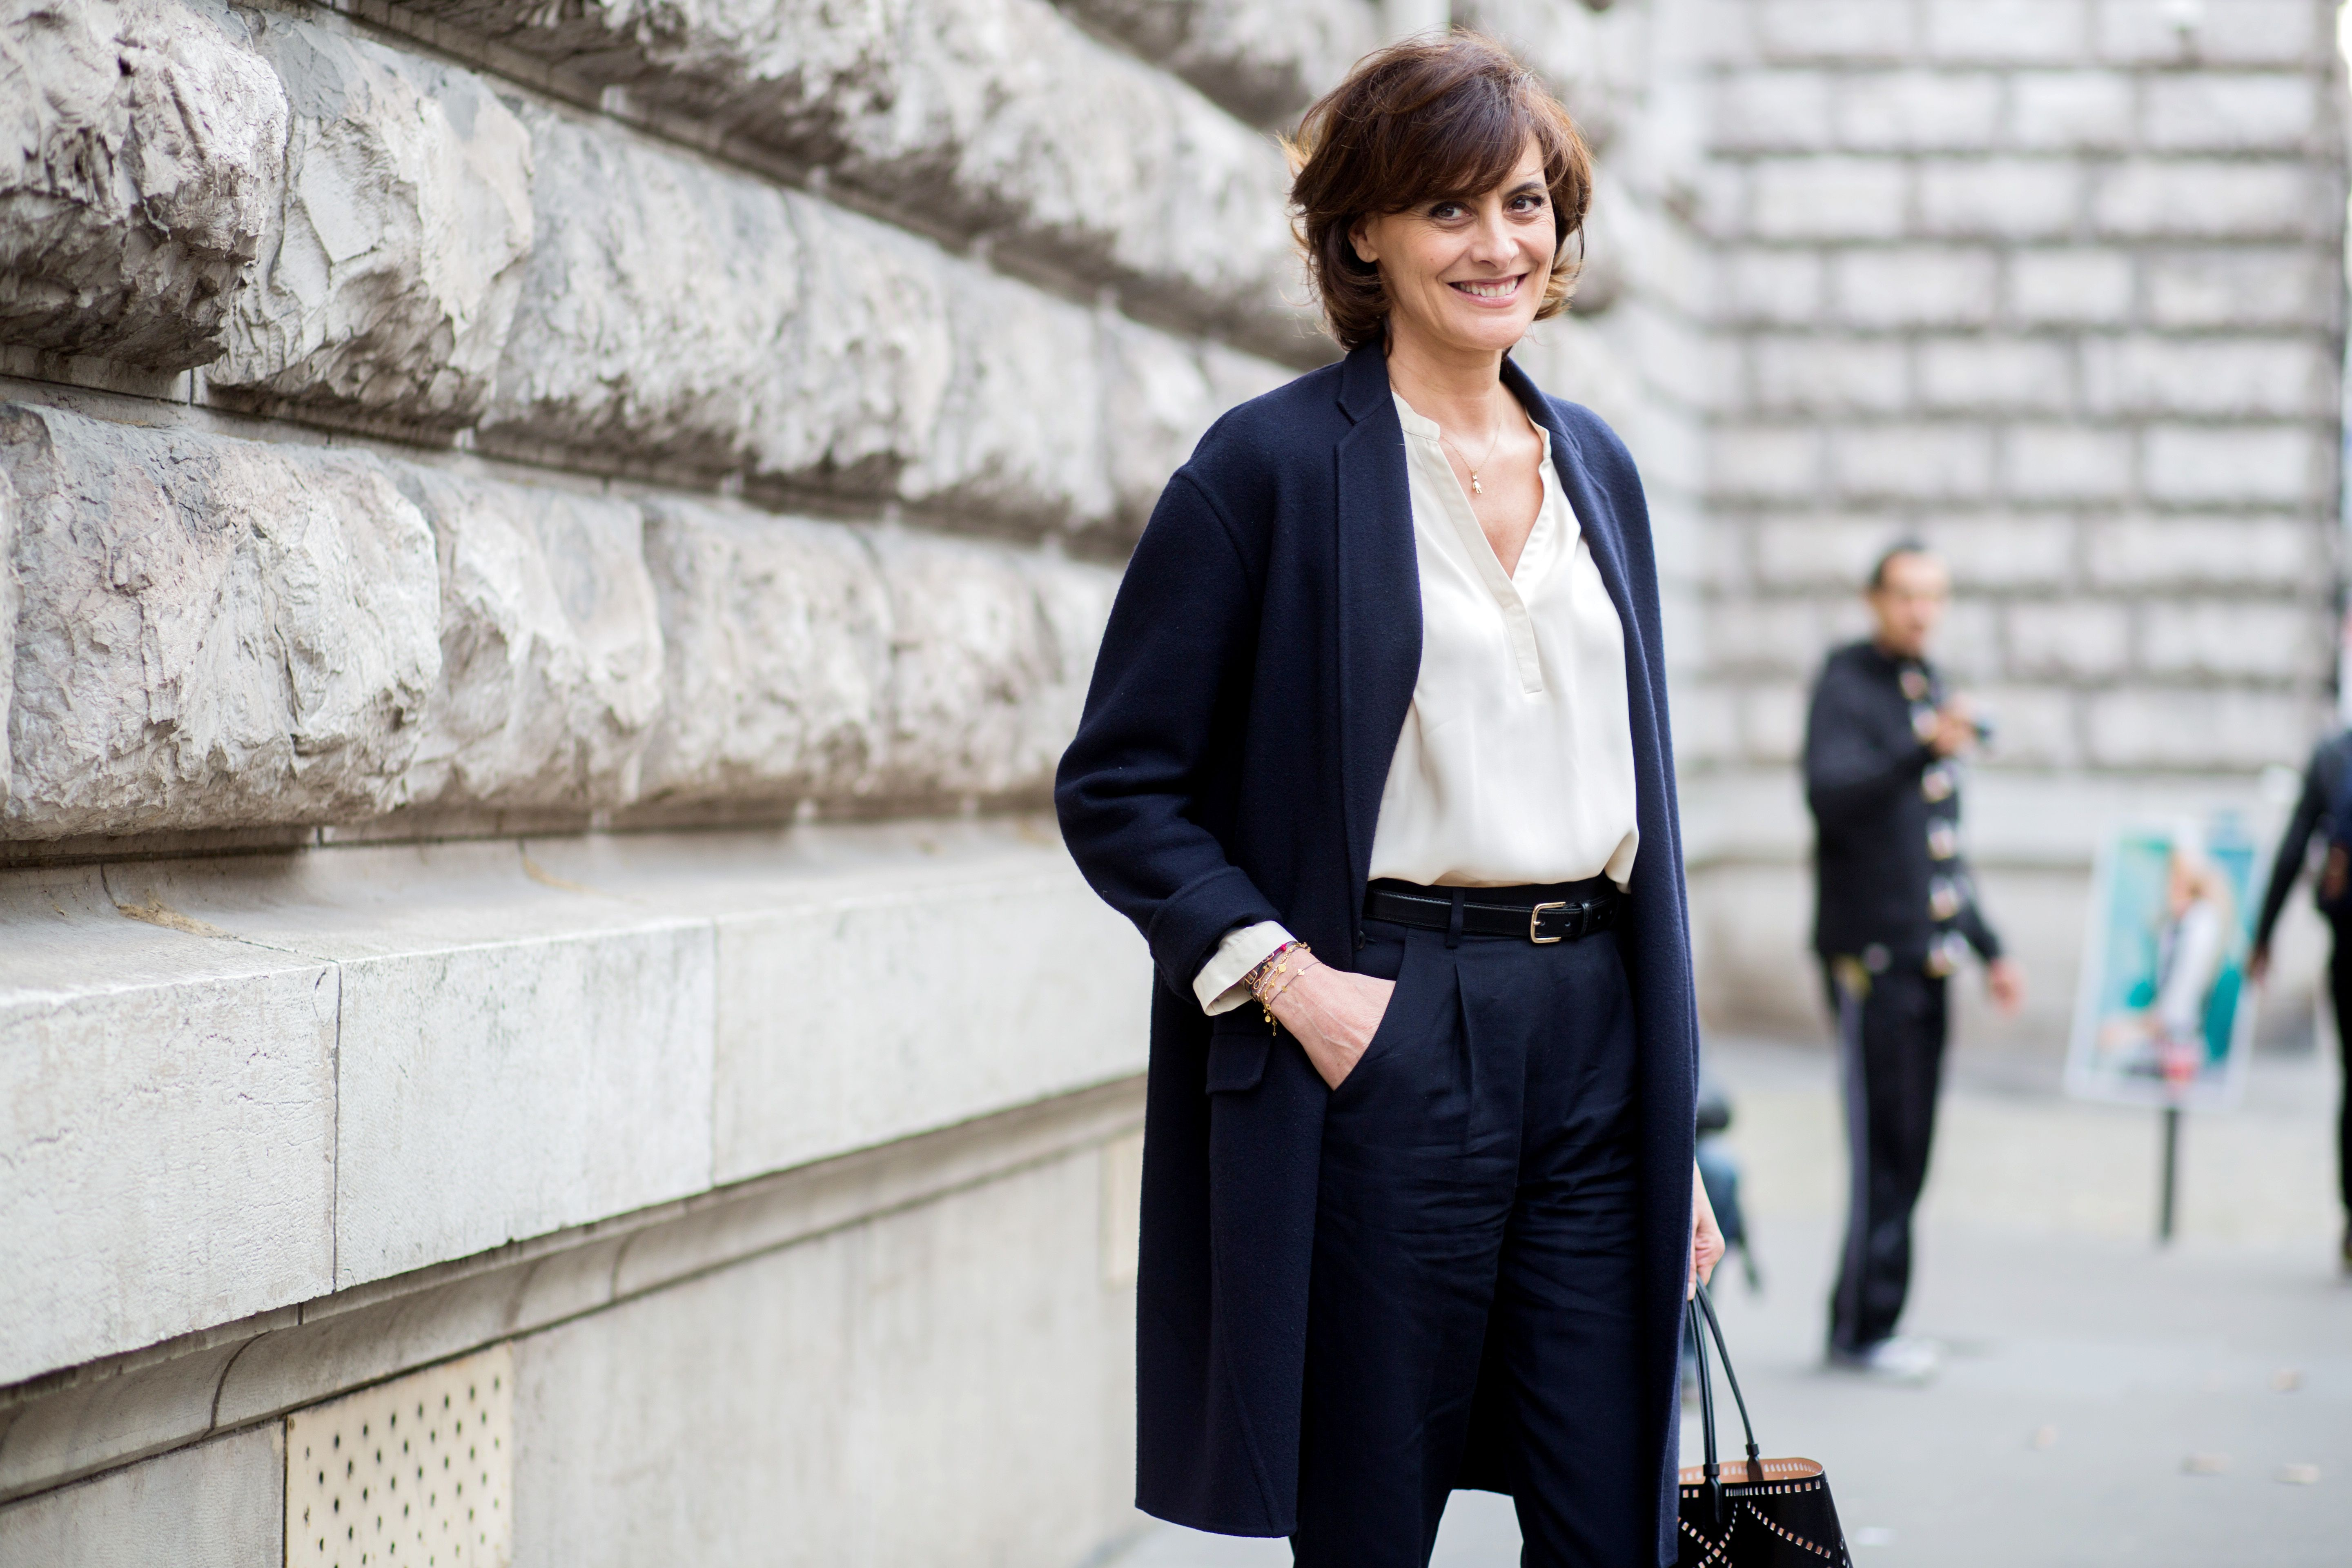 Classic navy coat worn with a blouse tucked into high-waisted trousers at Paris Fashion Week // Photo: The Stylograph